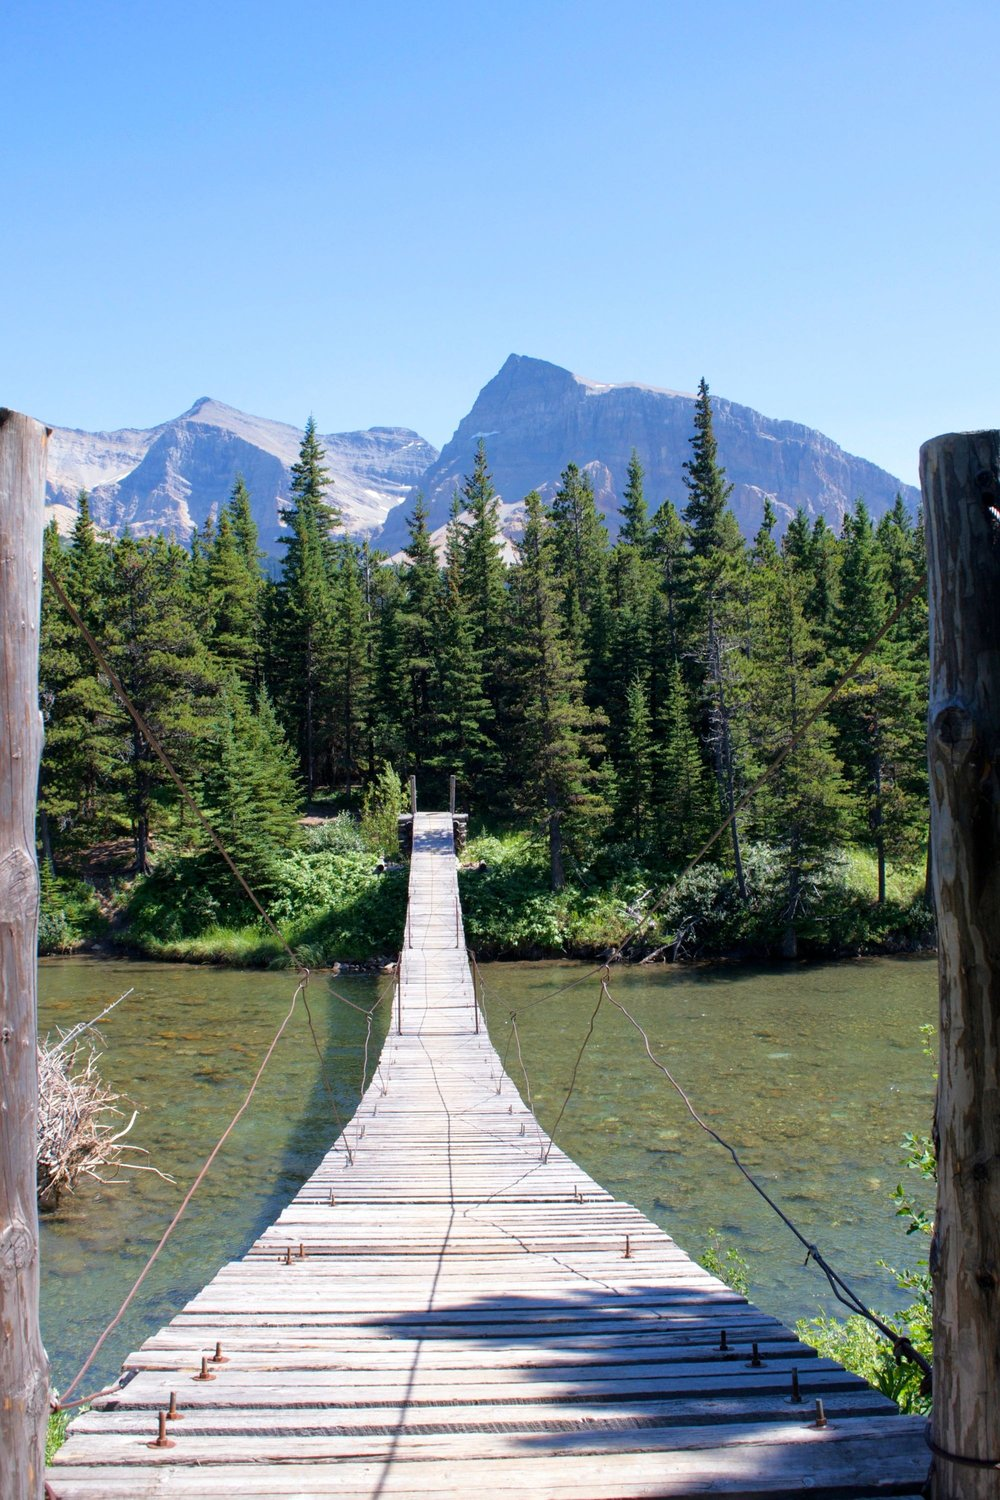 The longest footbridge in Glacier National Park's backcountry, according to the ranger we ran into.